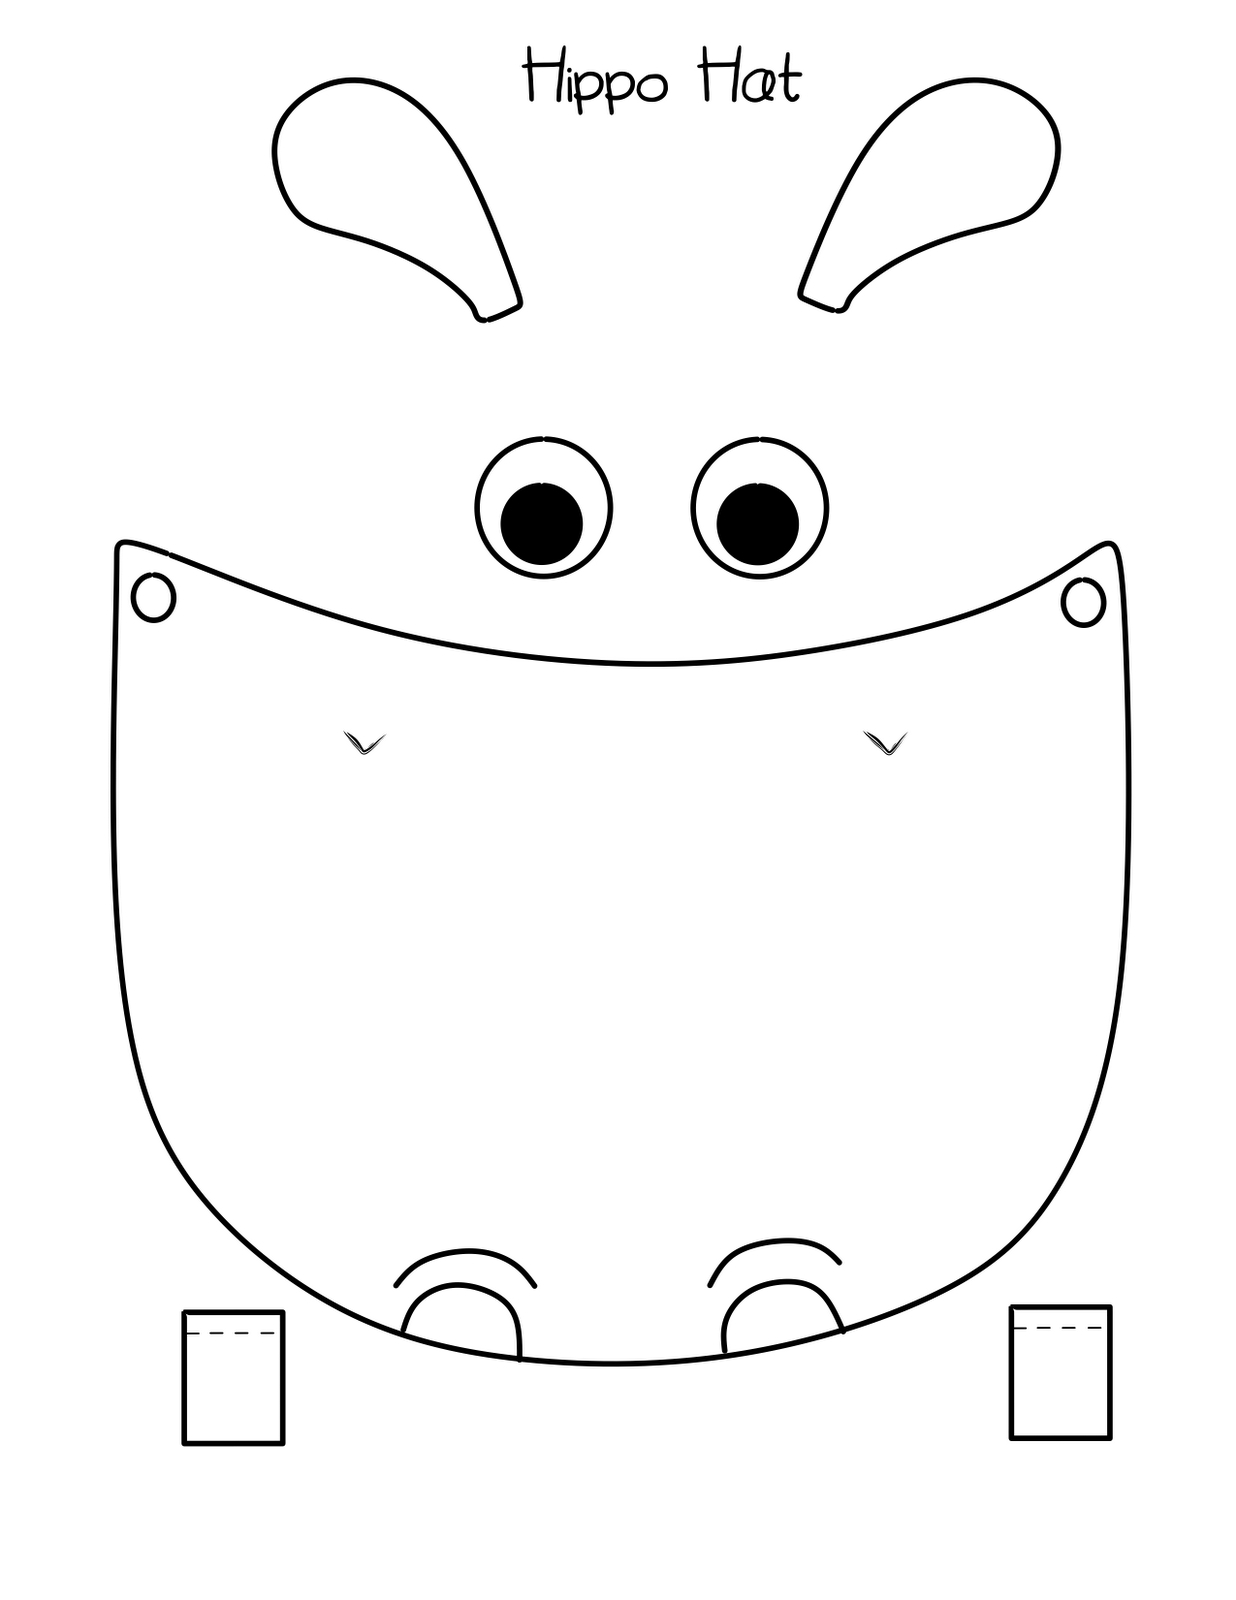 Bust Out Your Crayons: Hippo Hat Free Printable | Hippo Party Ideas - Free Printable Hippo Mask